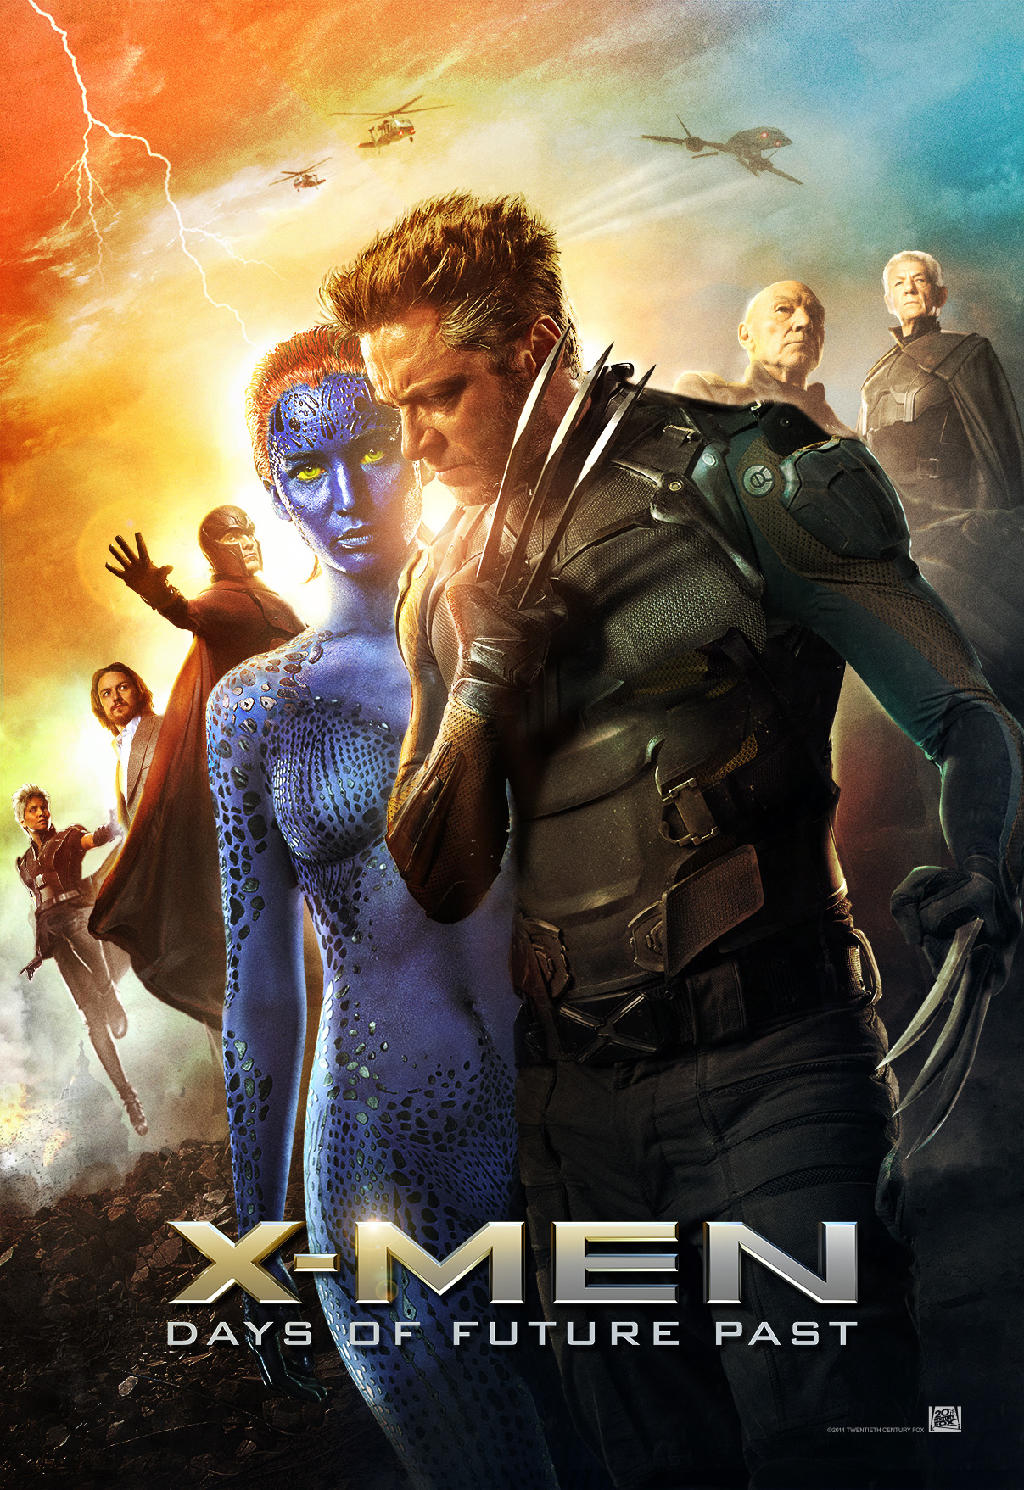 XMen Days of Future Past 2014 REVIEW The Wolfman